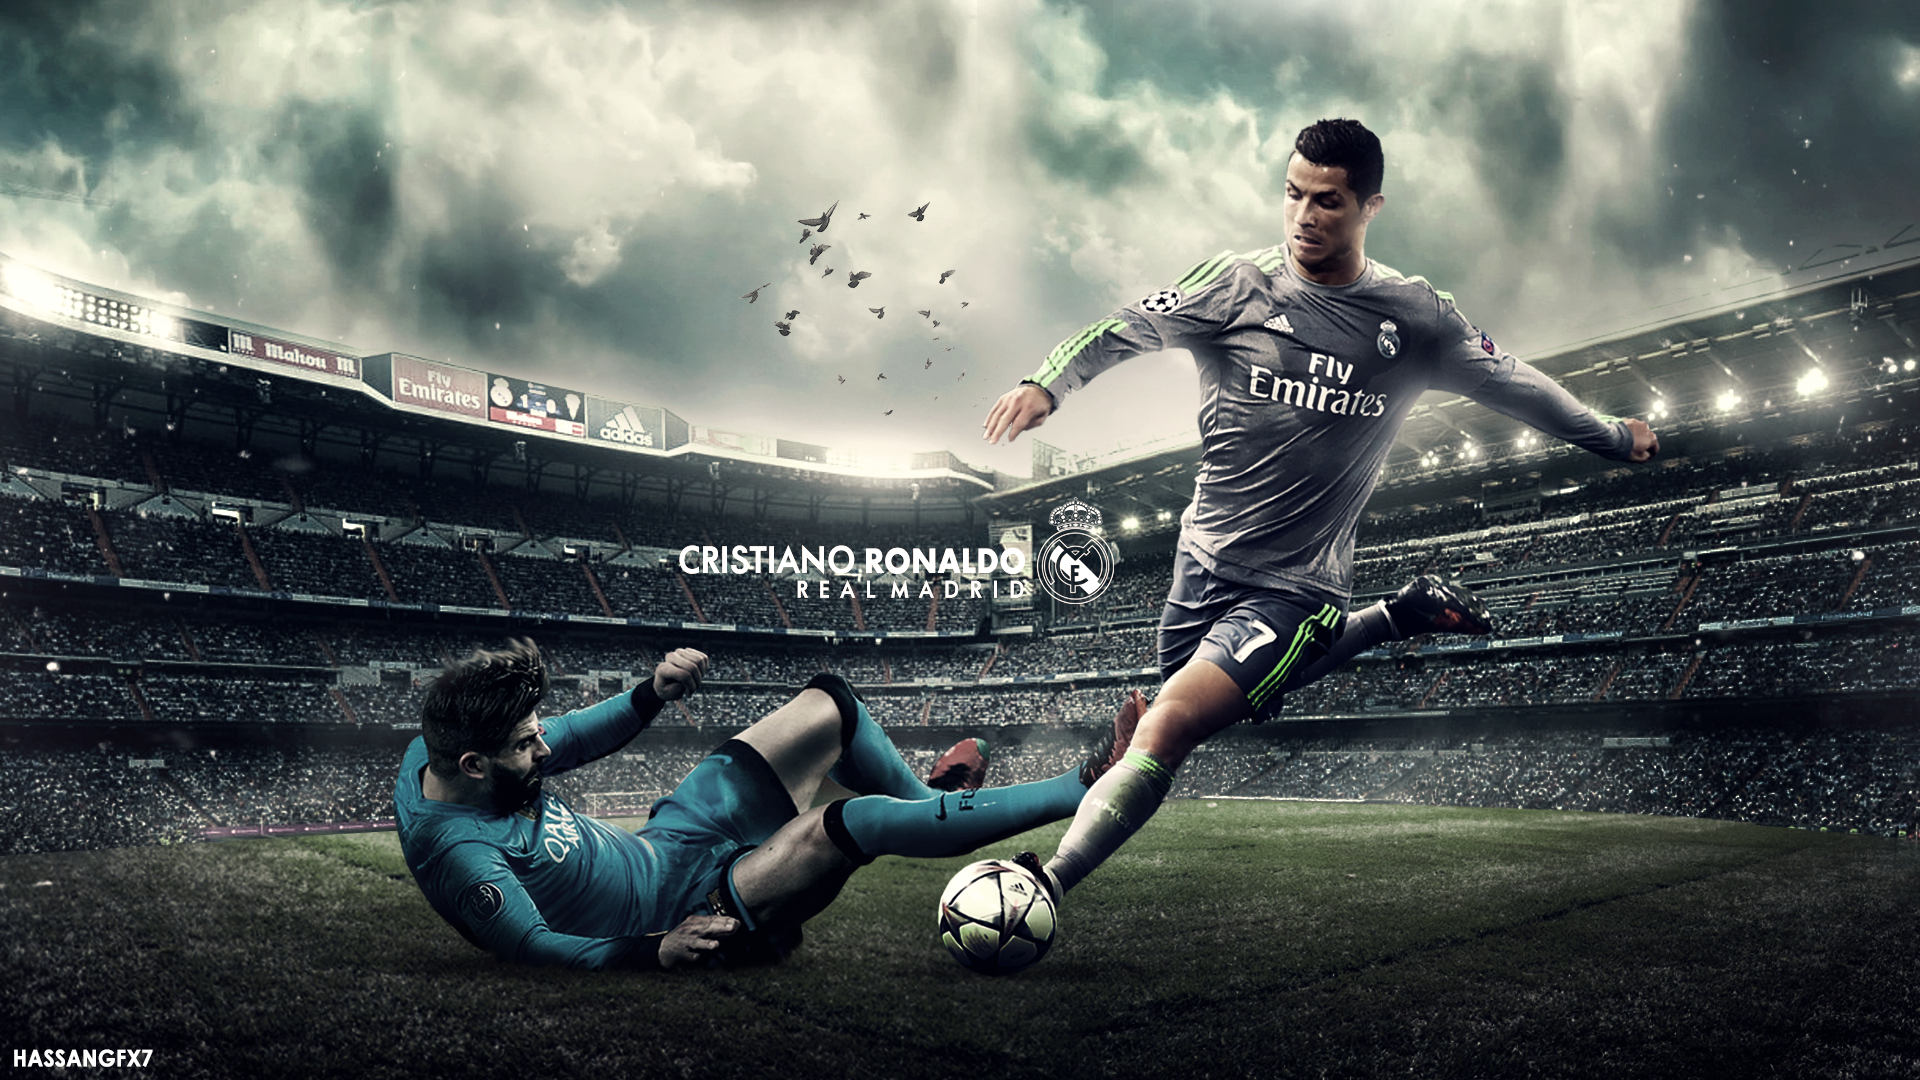 Cristiano Ronaldo Wallpaper 2016/17 by HassanGFX7 on DeviantArt